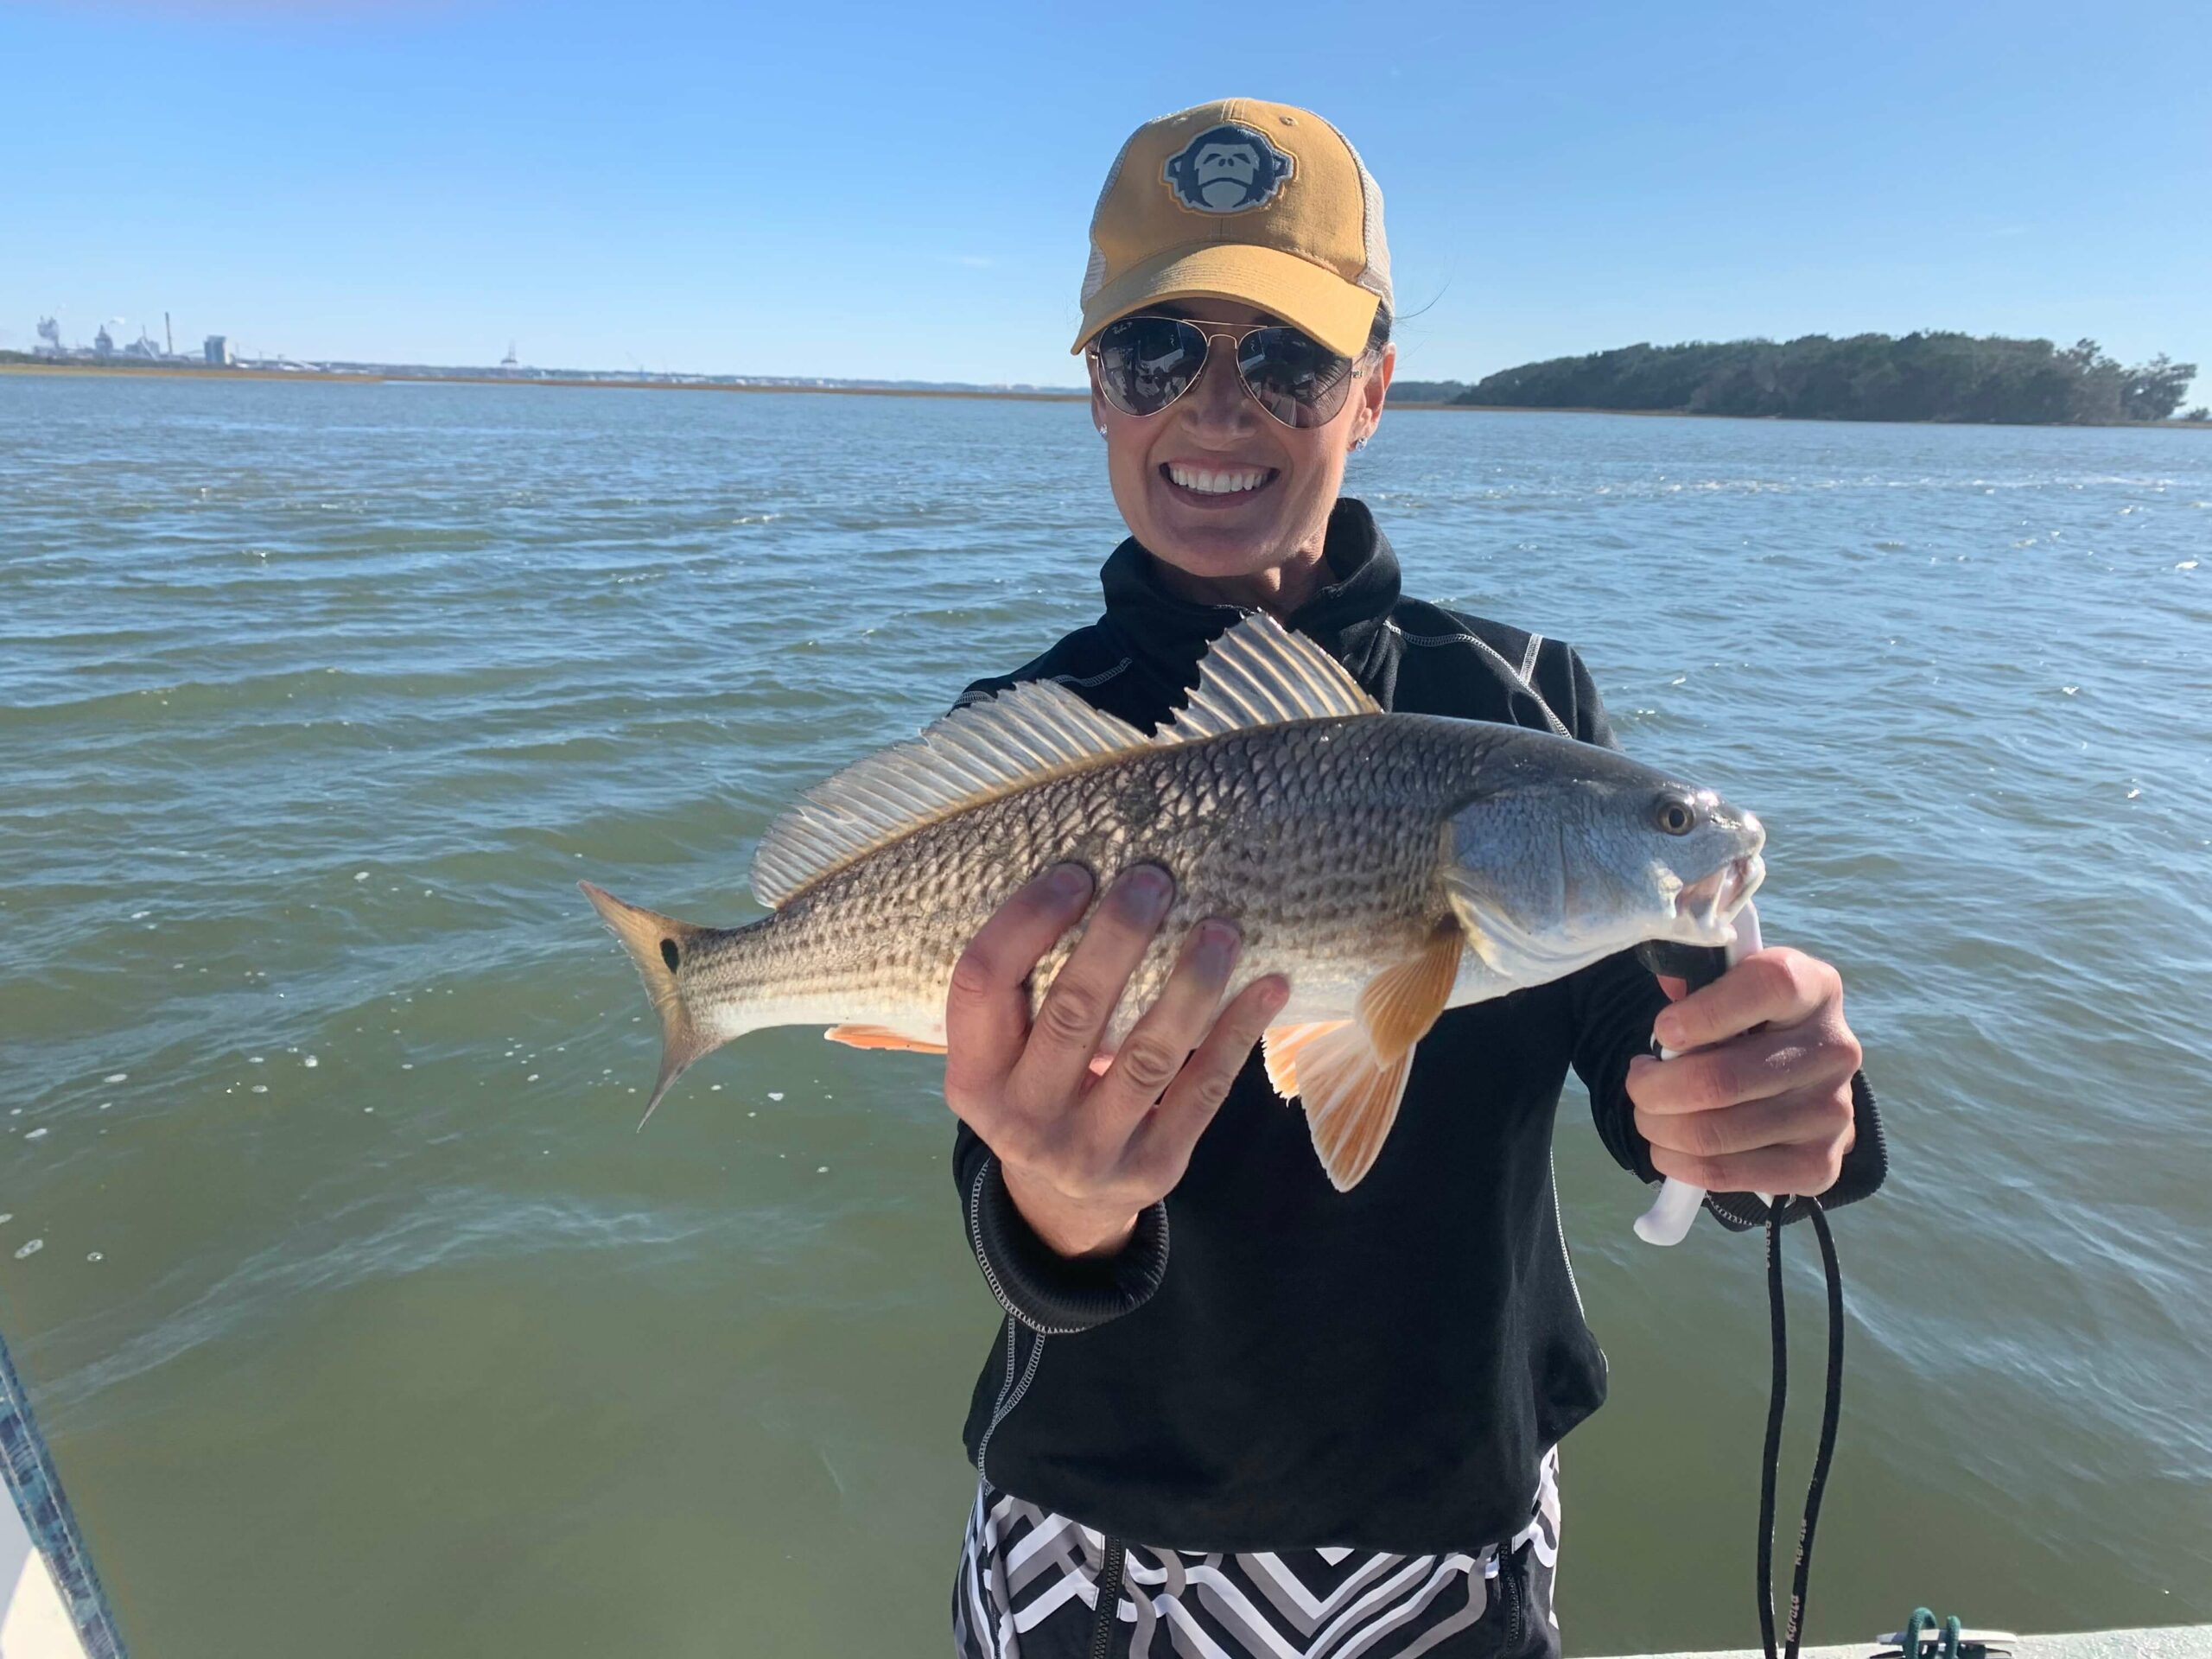 fishing charter in florida by lady